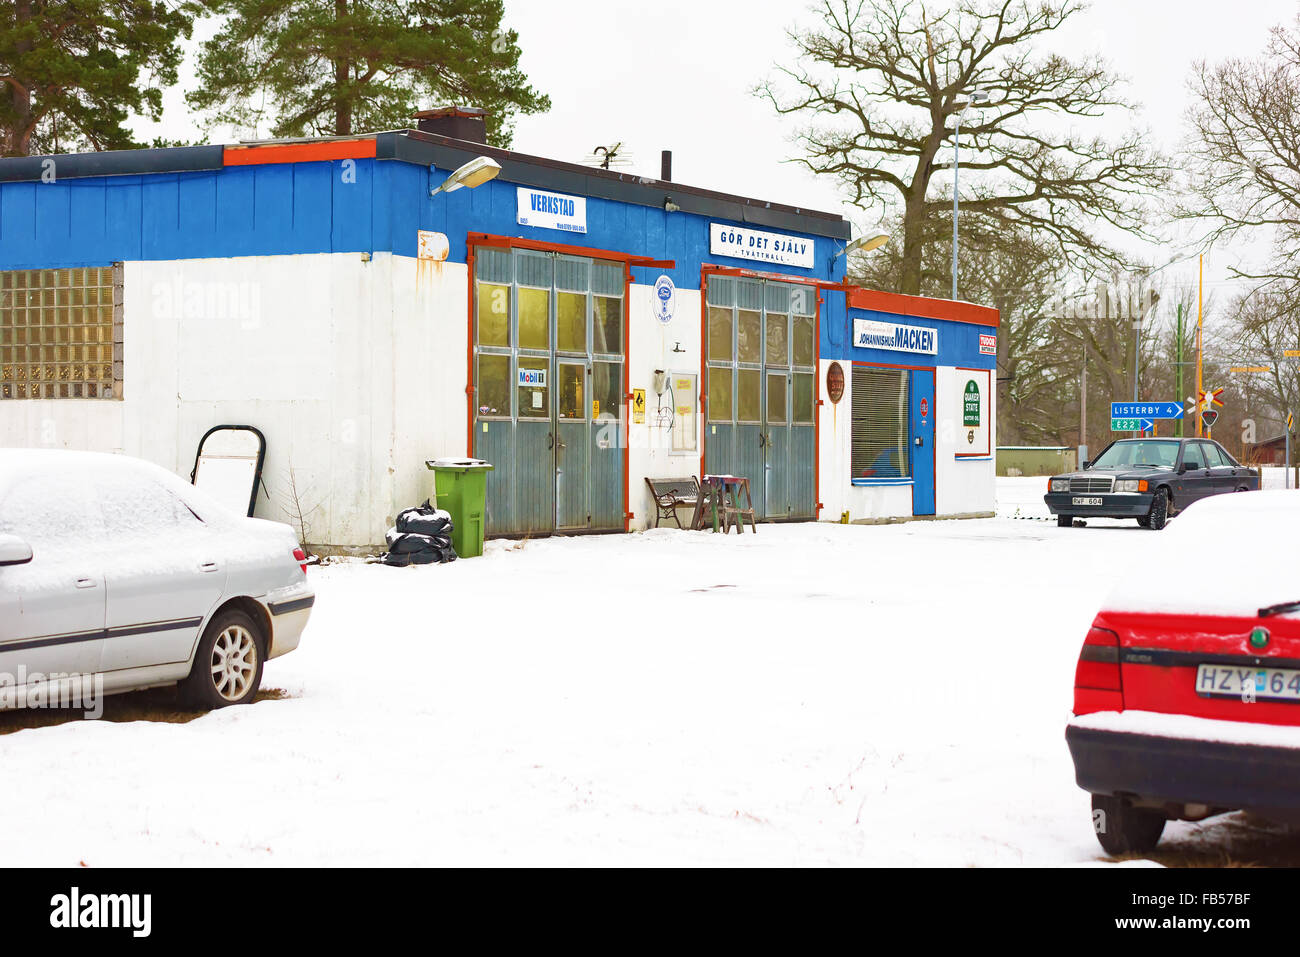 Johannishus sweden january 8 2016 the auto repair shop houses johannishus sweden january 8 2016 the auto repair shop houses a garage and a do it yourself car wash snow outside and clos solutioingenieria Choice Image